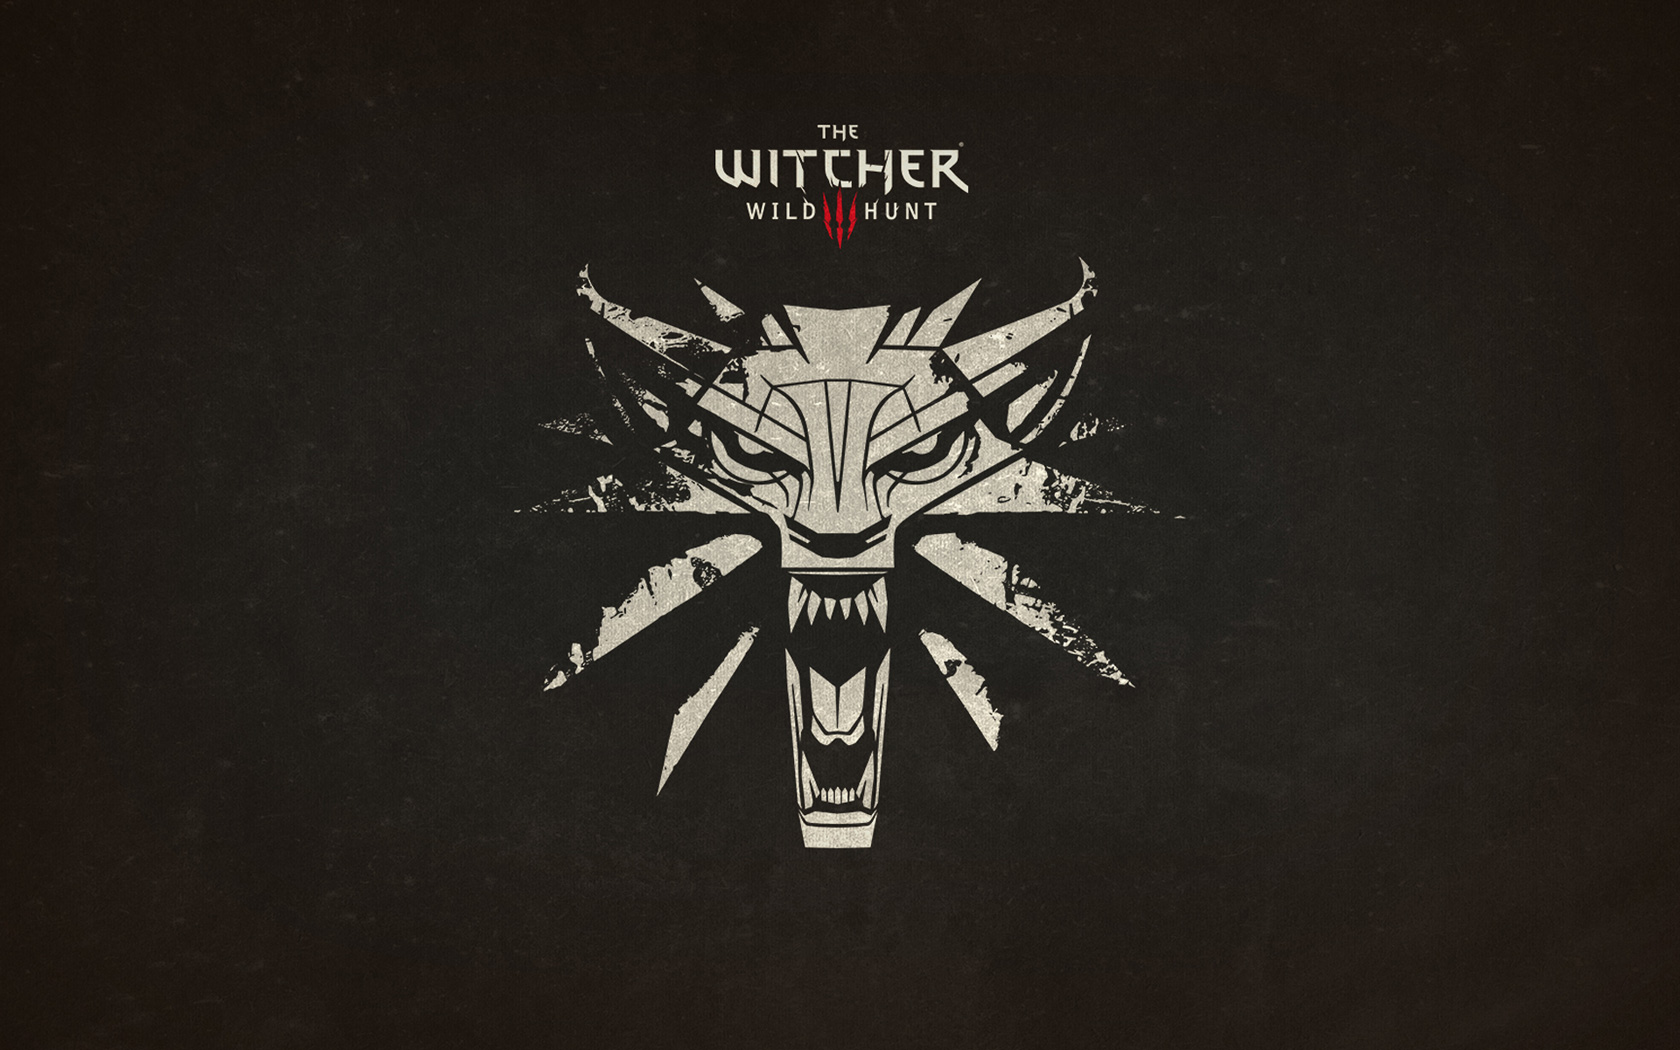 Free The Witcher 3 Wallpaper in 1680x1050